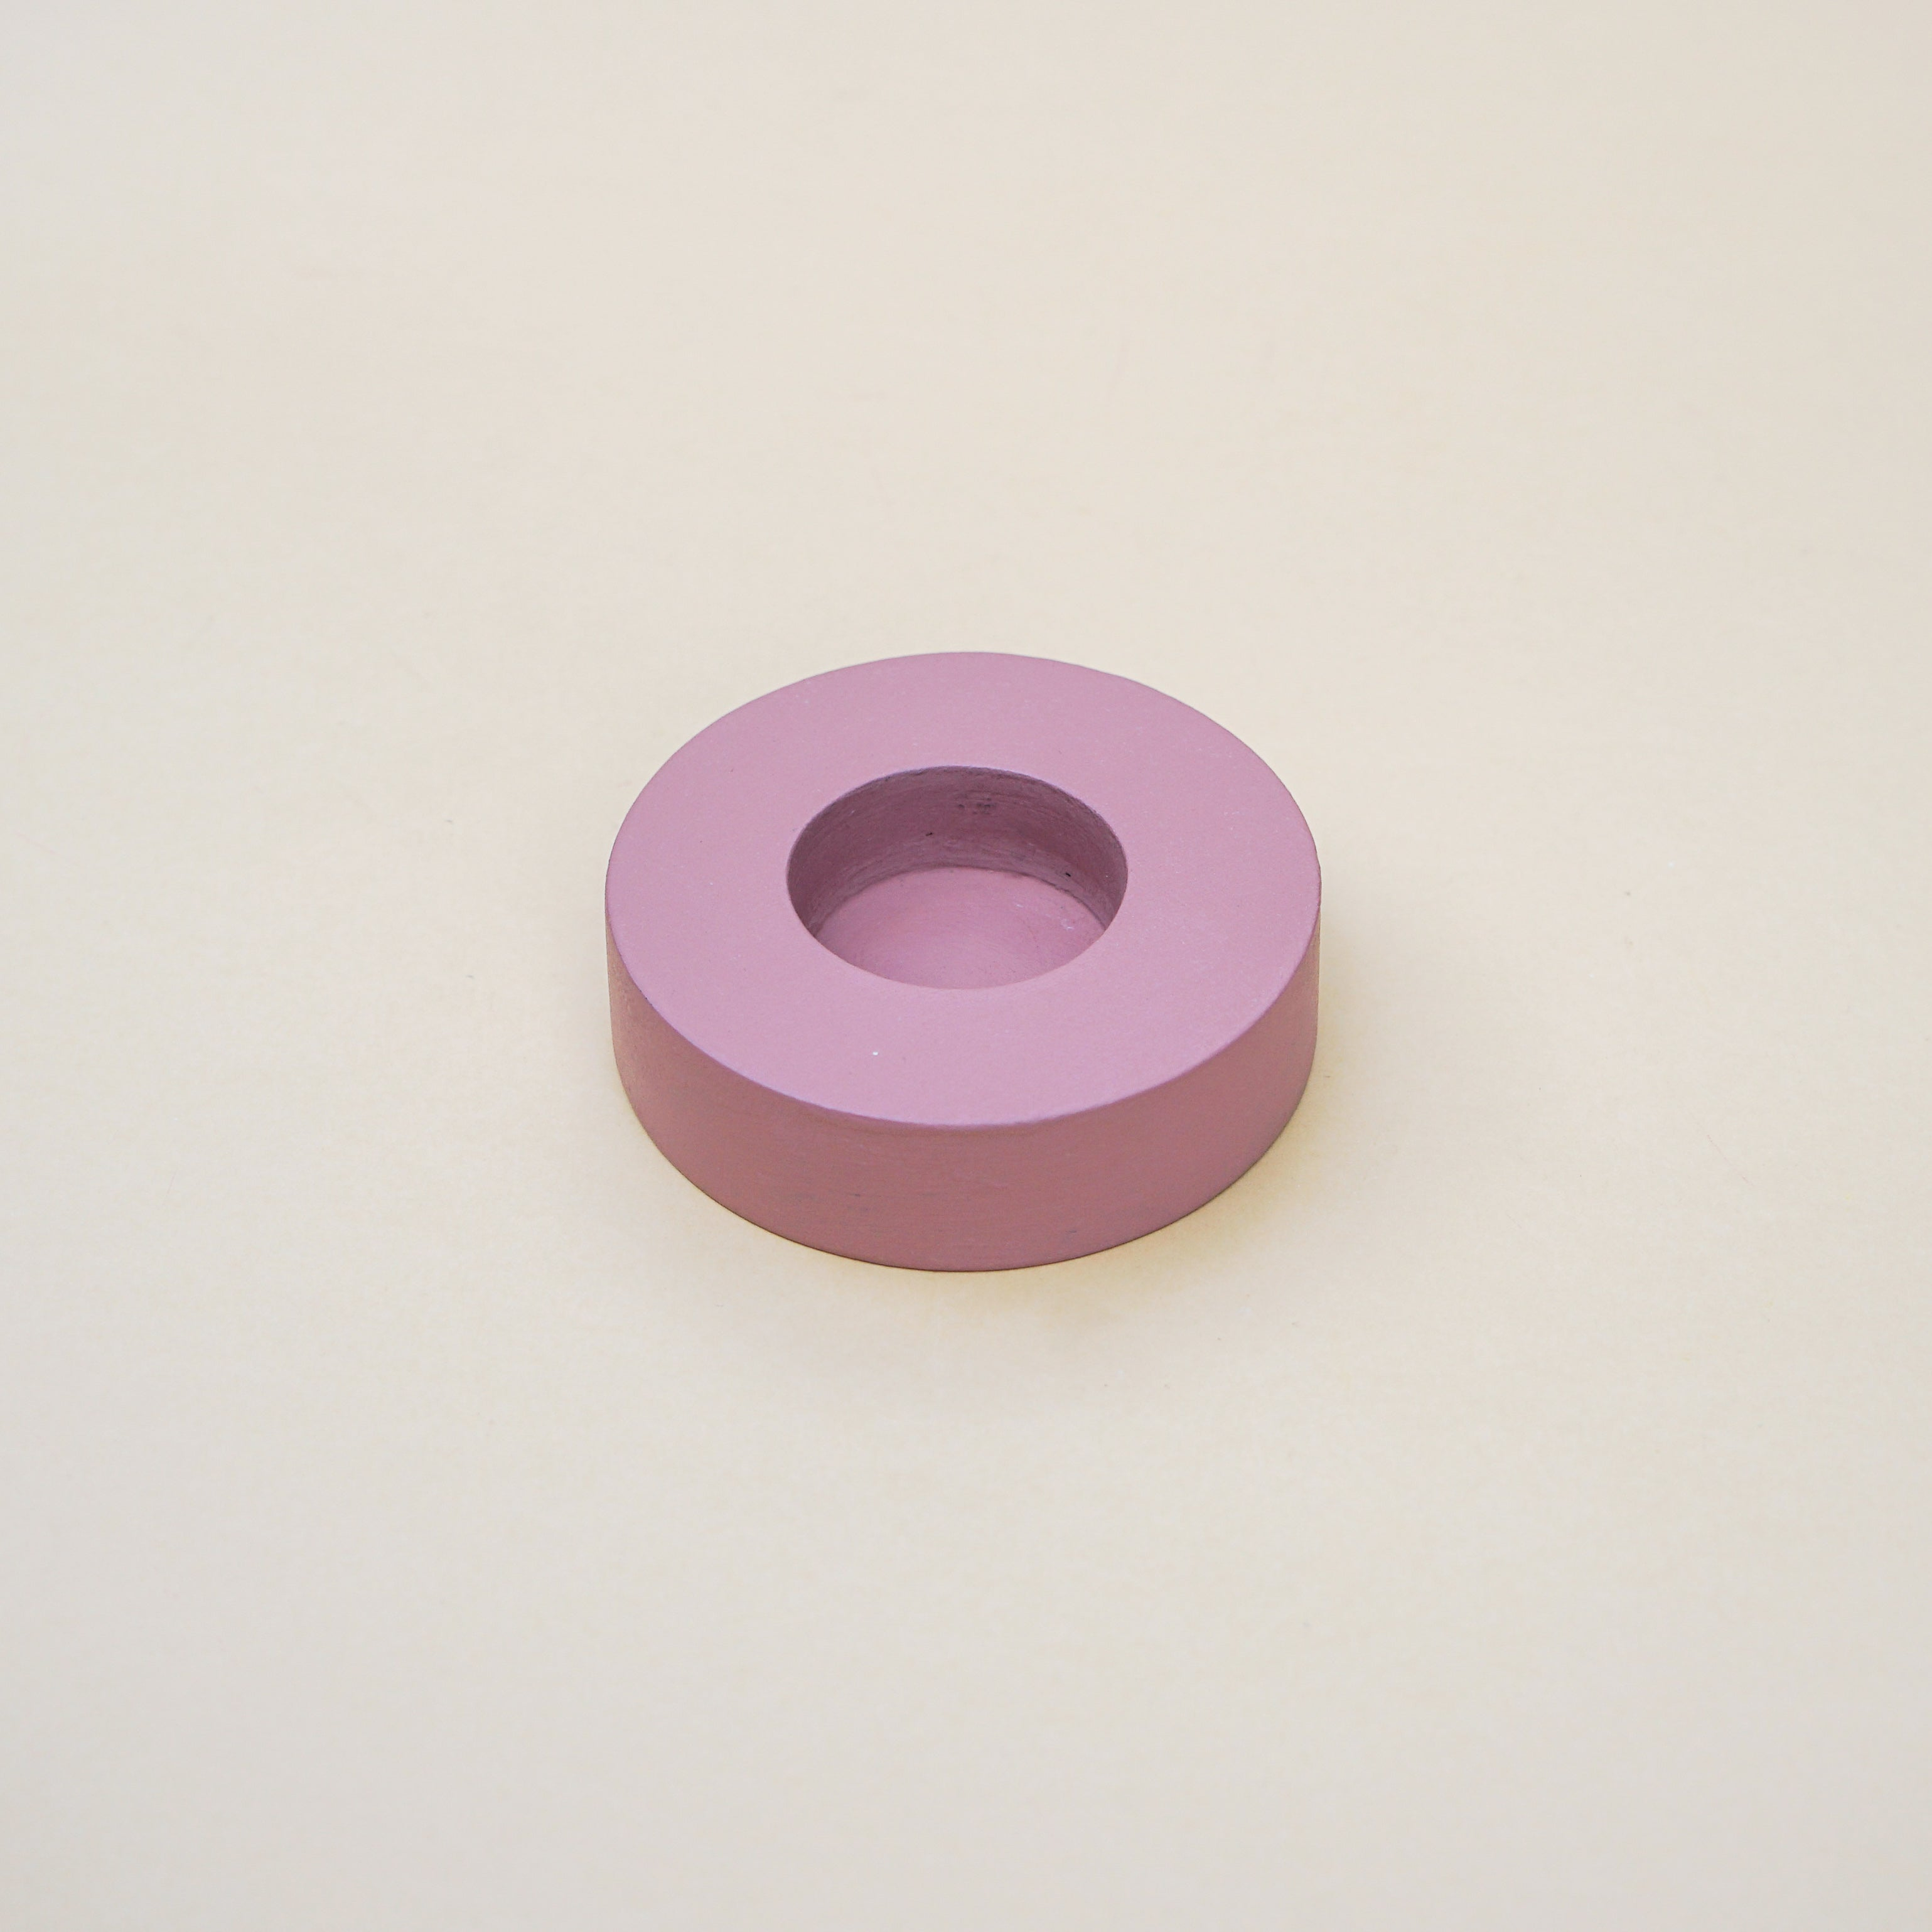 Blush Round Wooden Tealight Holder. Smooth round edge with pastel tone finish. Perfect for contemporary look interior.